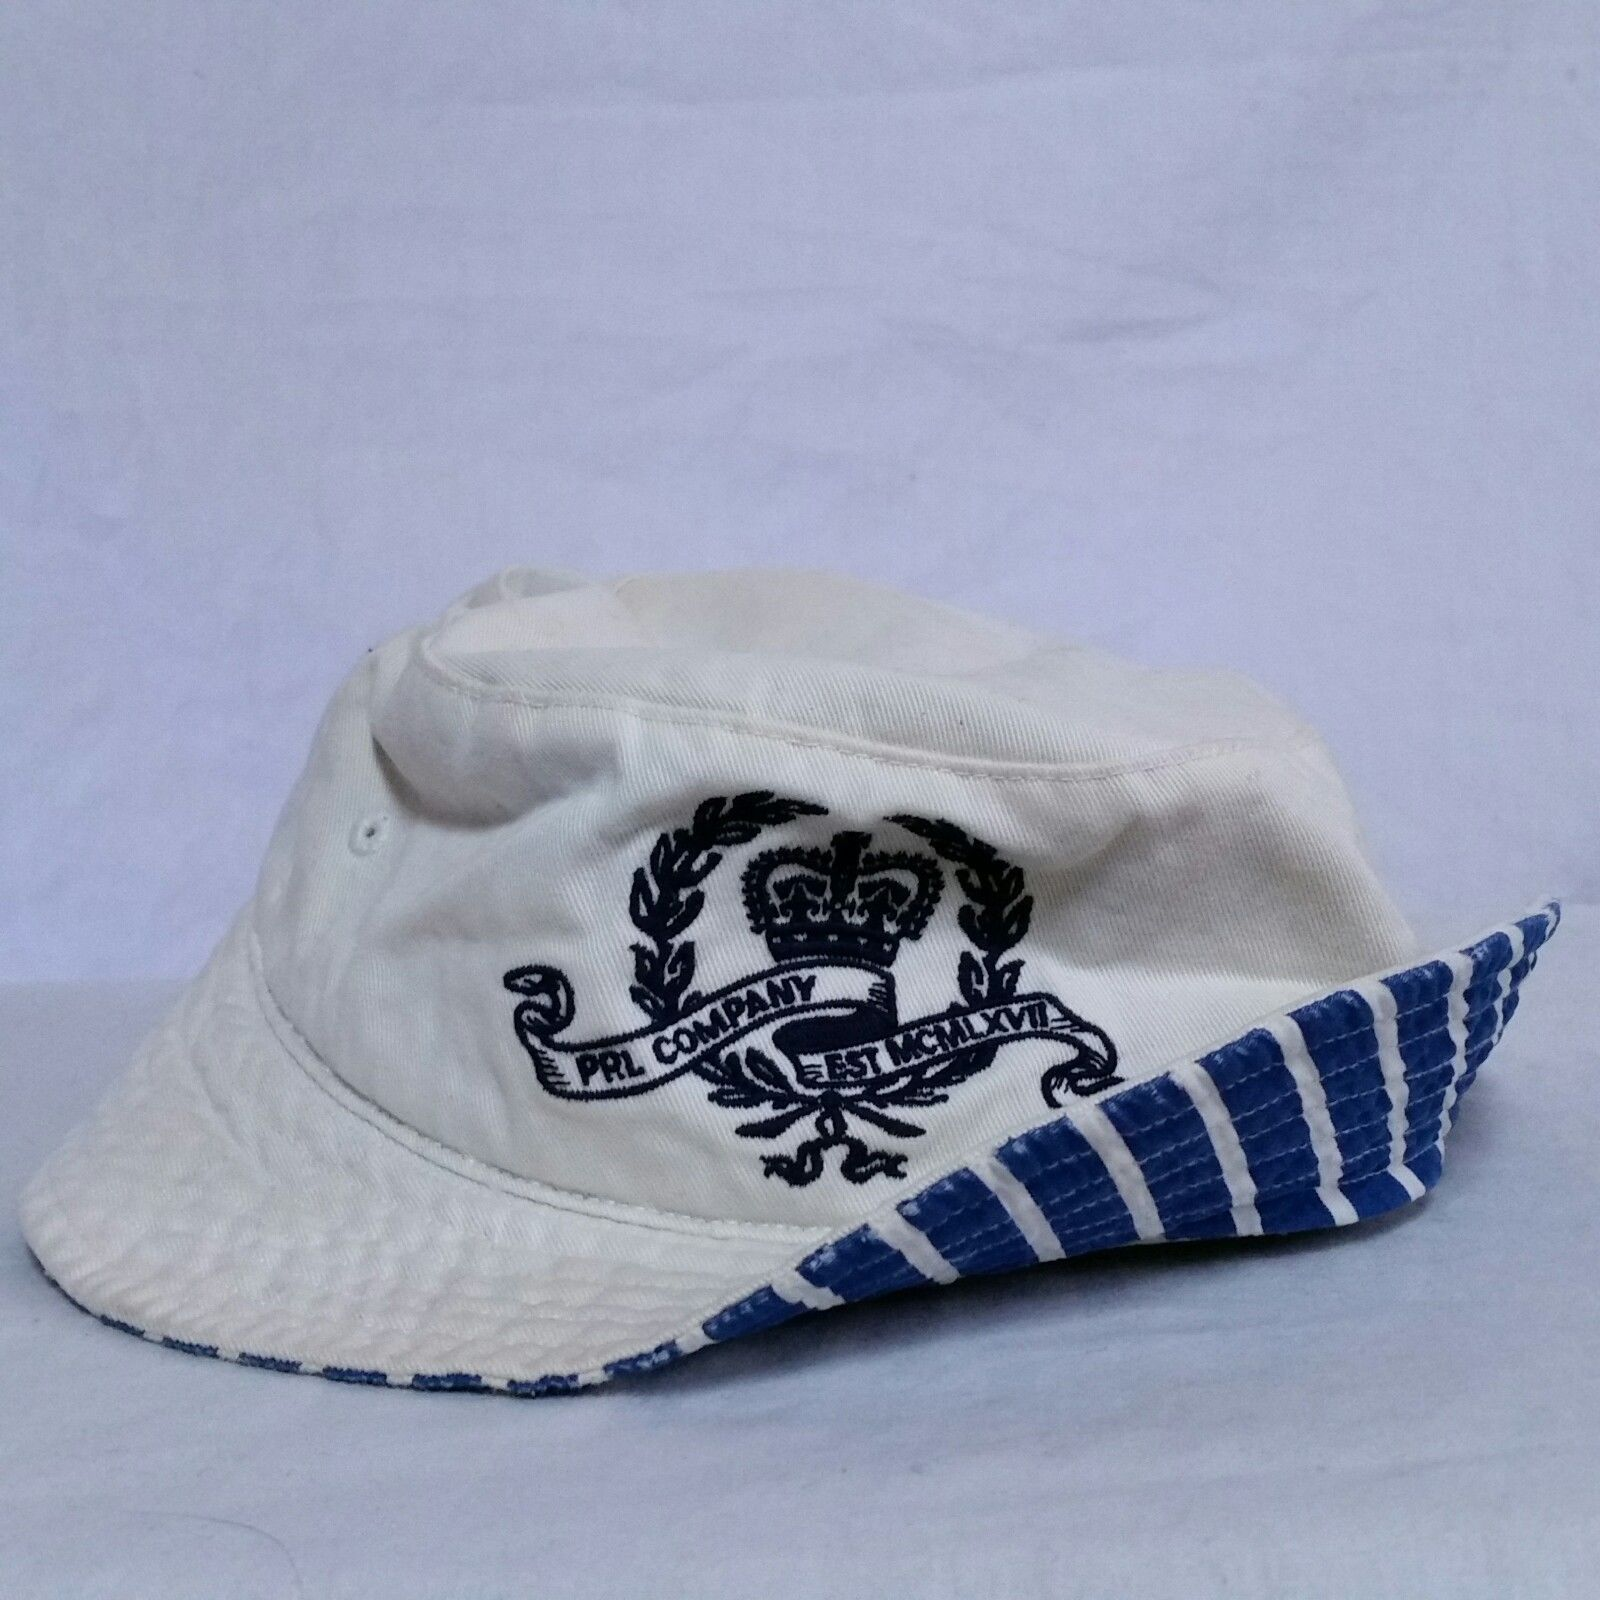 f88e3850cce VTG Polo Ralph Lauren Bucket Hat Crest Crown and 50 similar items. S l1600